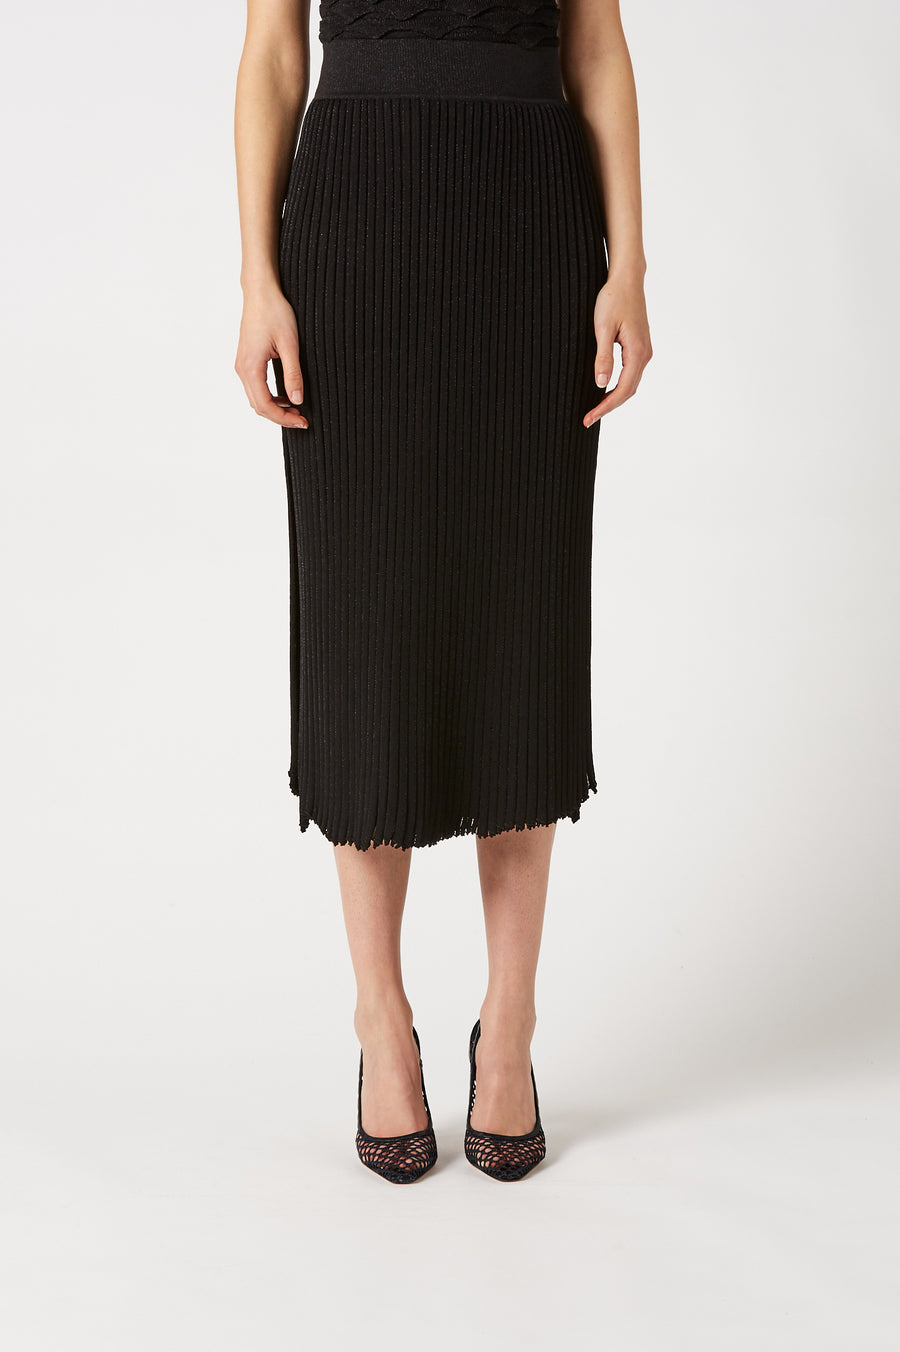 Arriving at an elegant cocktail length, the skirt features side wrap detailing and back zip closure.